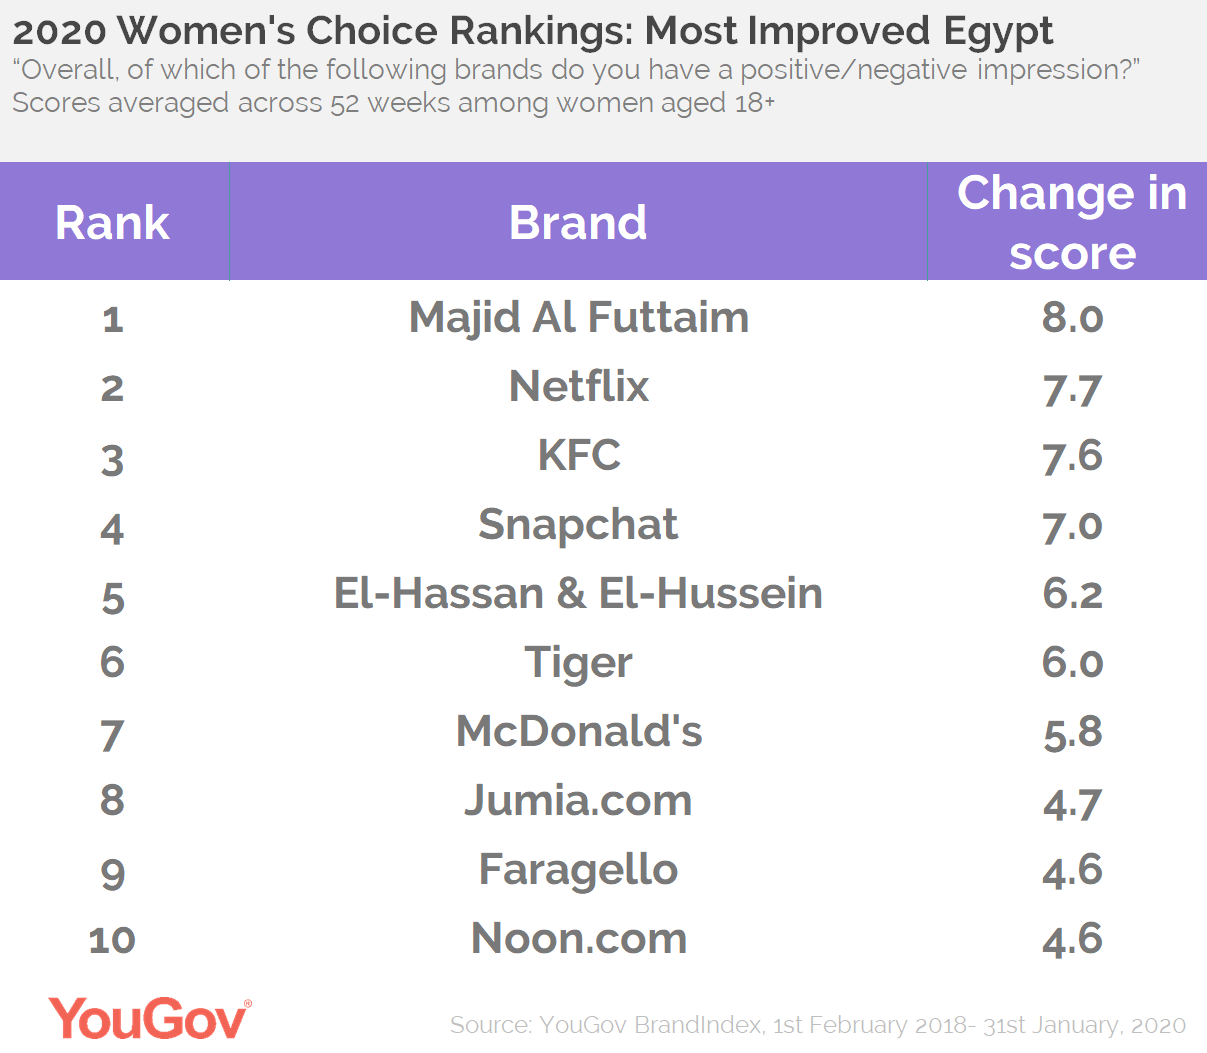 Top Improvers Egypt